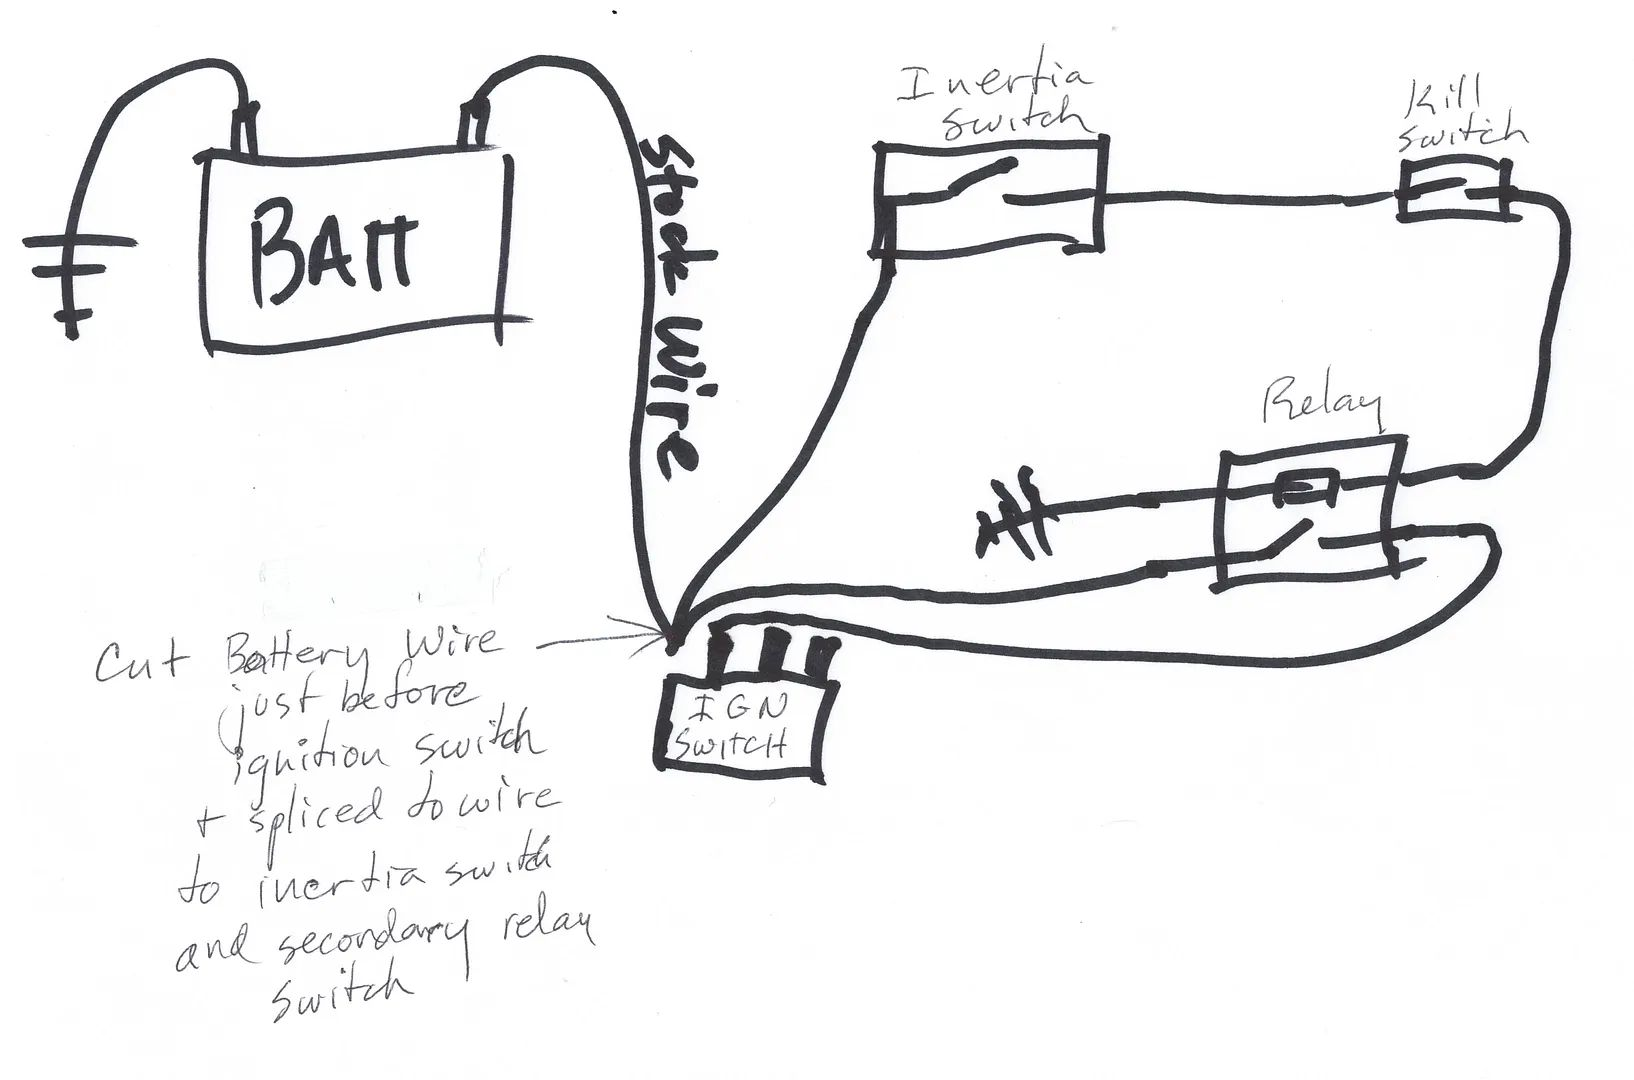 12 volt relay with toggle switch wiring diagrams free download